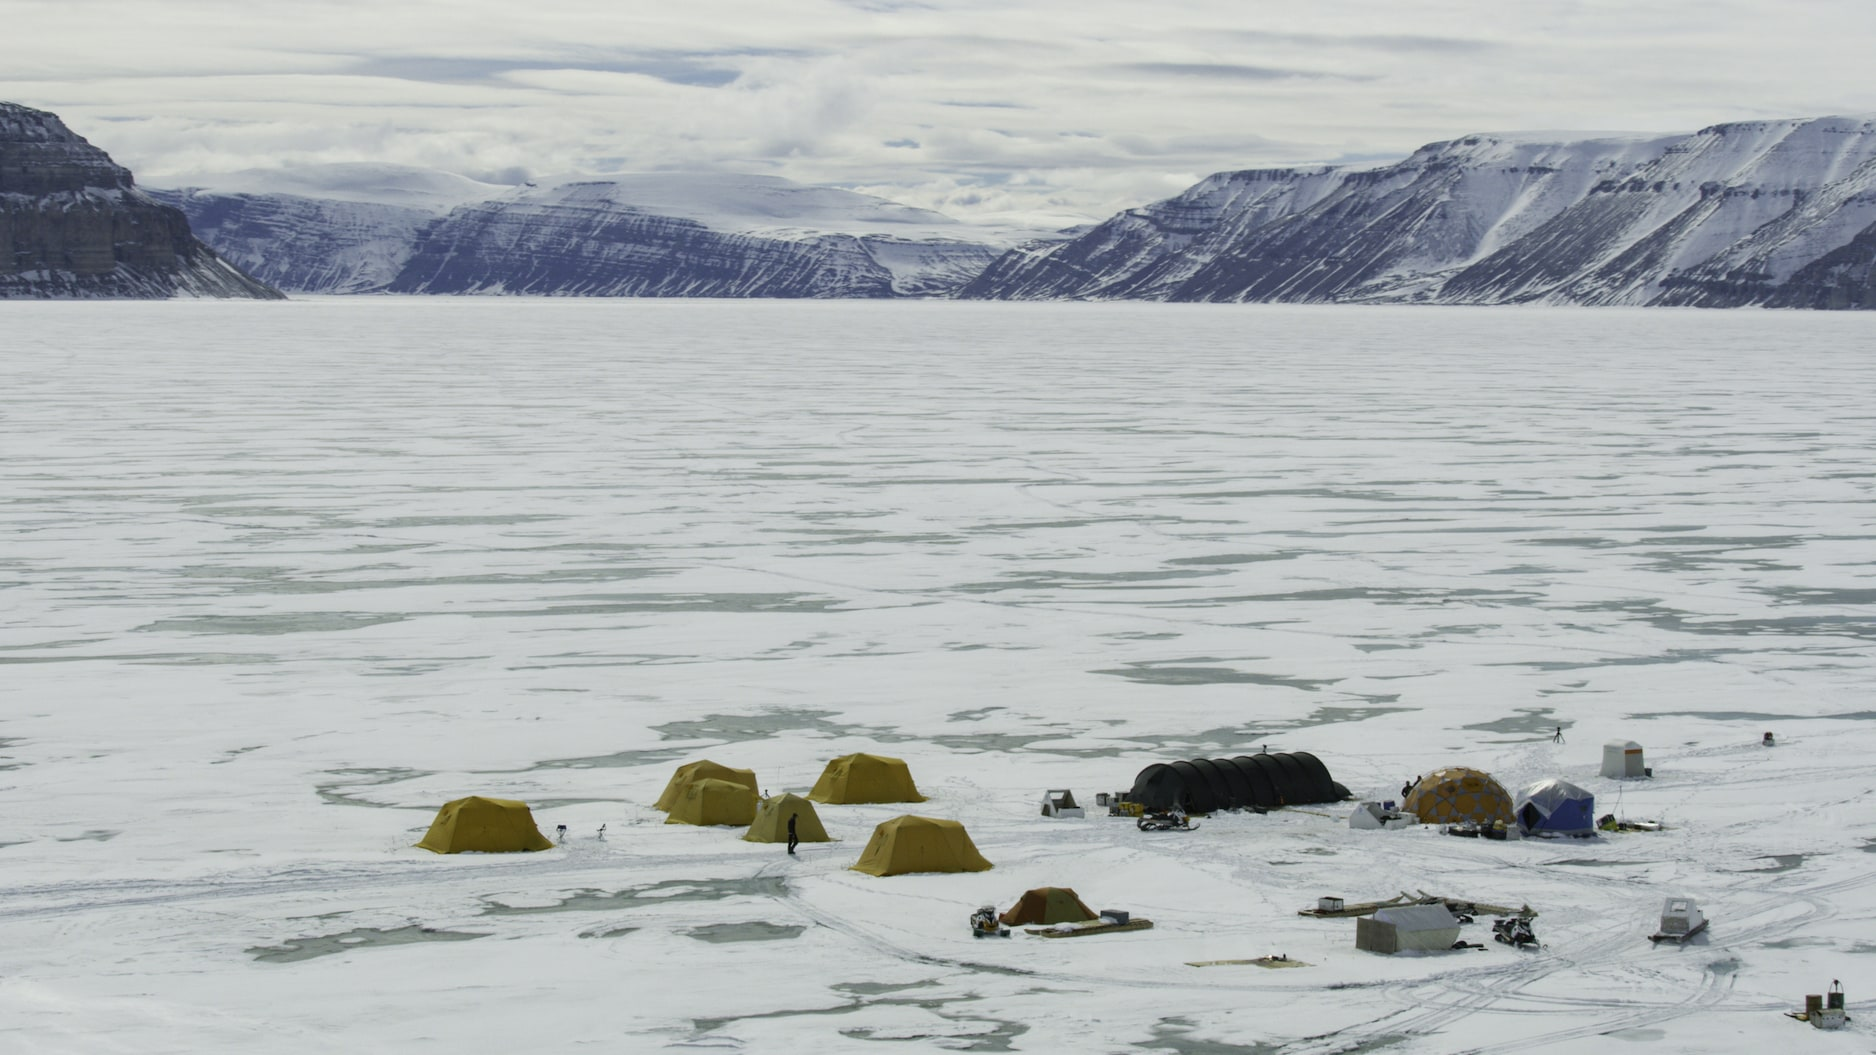 The Planet of the Whales film crew camped for nearly thirty days on the Arctic sea ice to film the little experienced lives of narwhals and belugas. (National Geographic for Disney+/Thomas Miller)